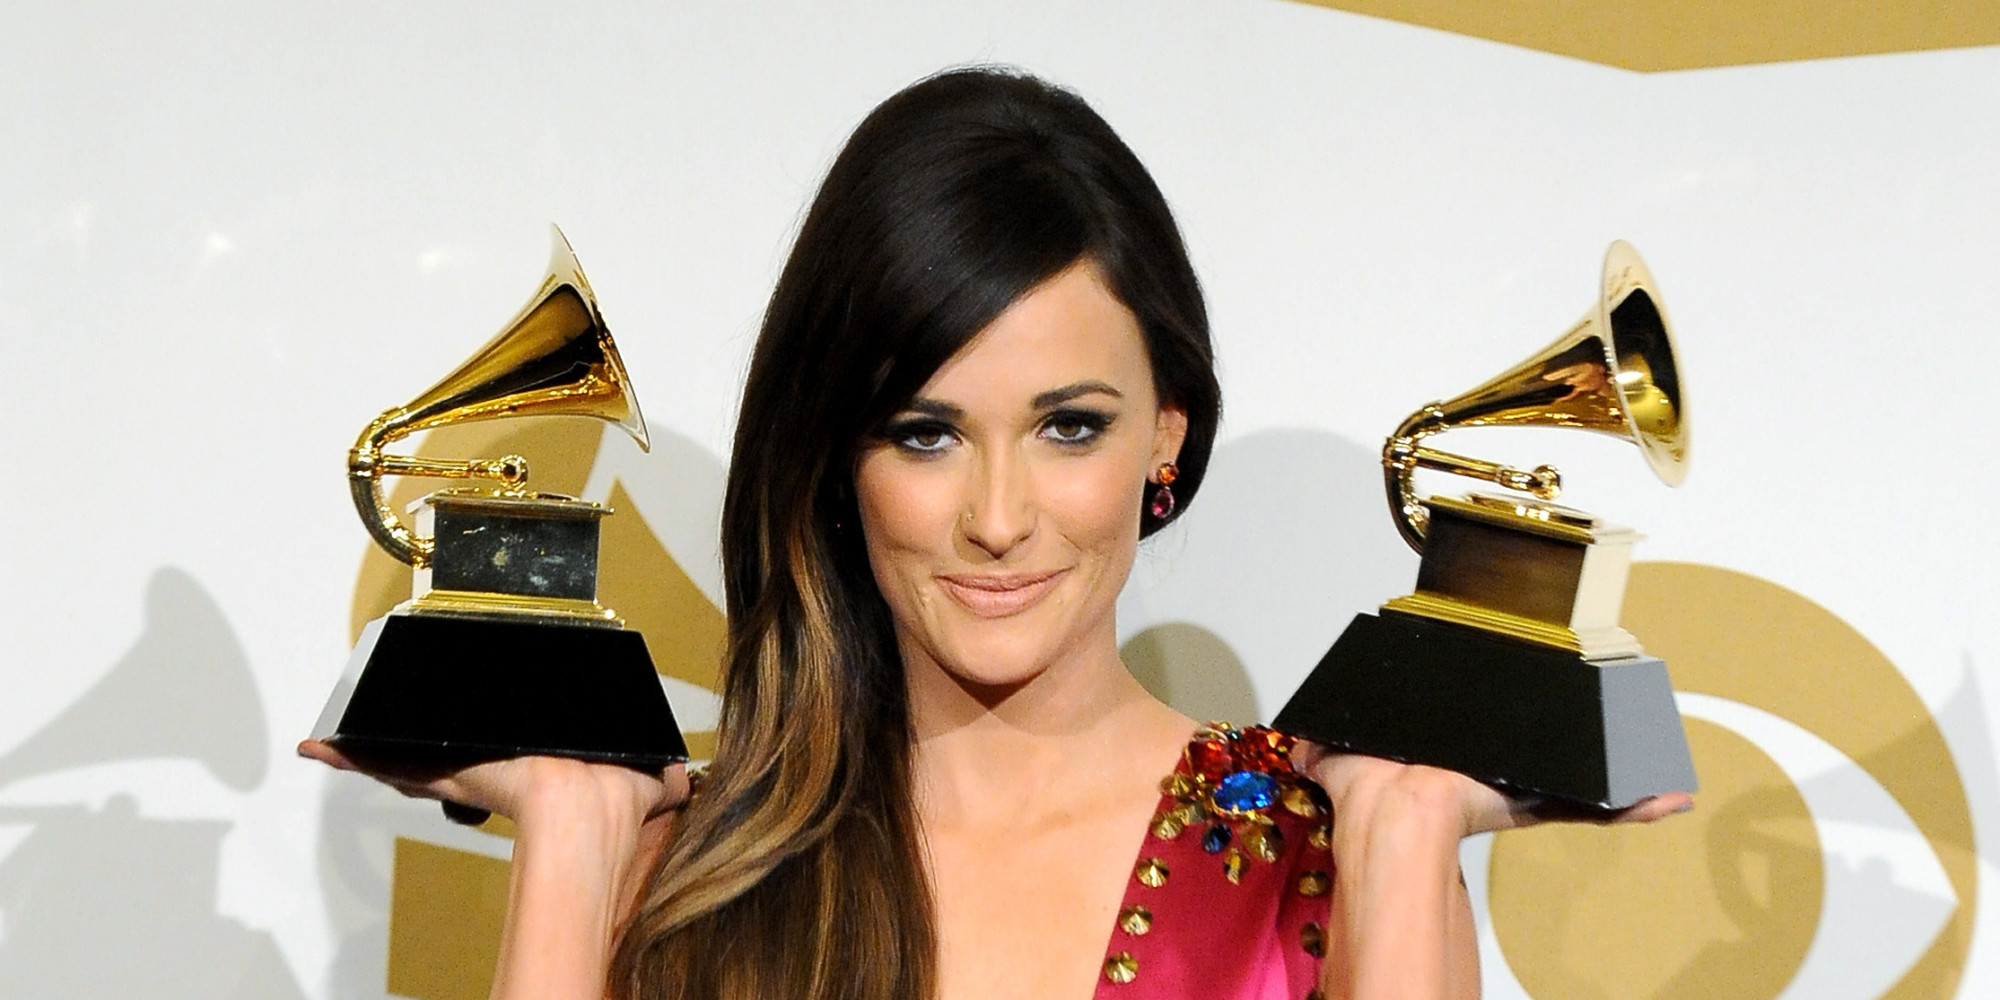 Kacey Musgraves: Dear Kacey Musgraves, I Have A Big Lesbian Crush On You